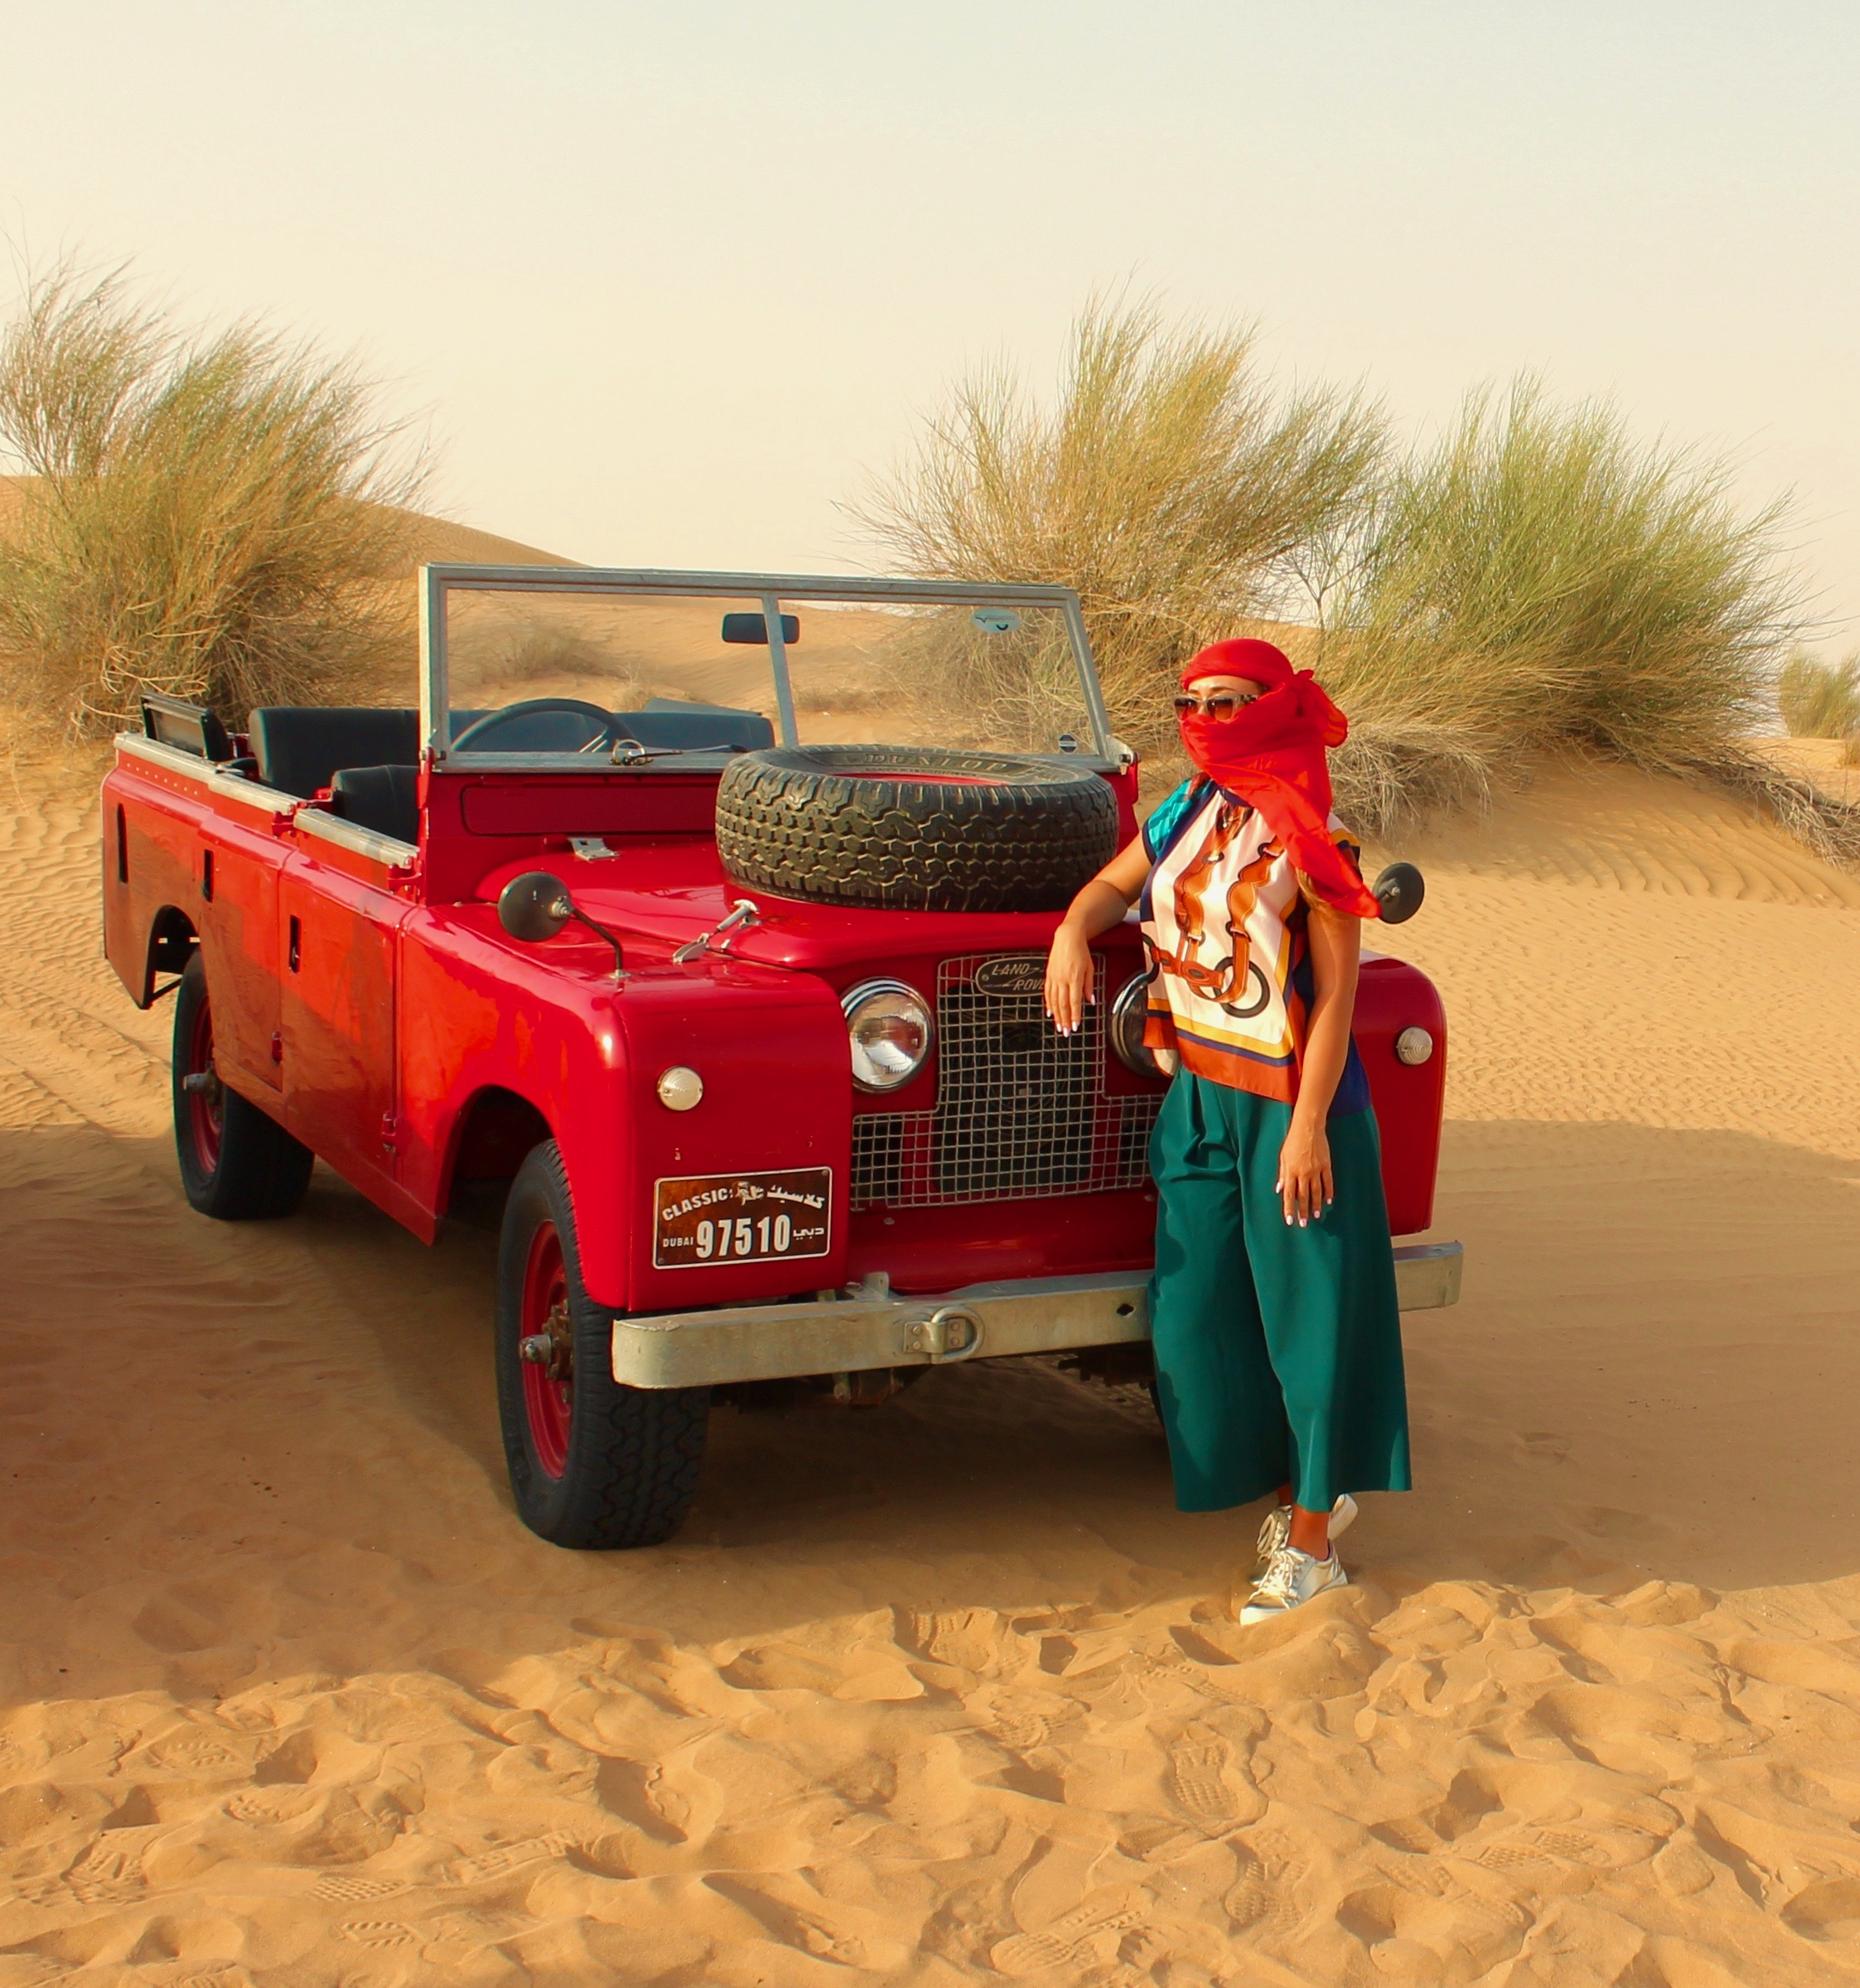 luxury-desert-safari-dubai-lustforthesublime